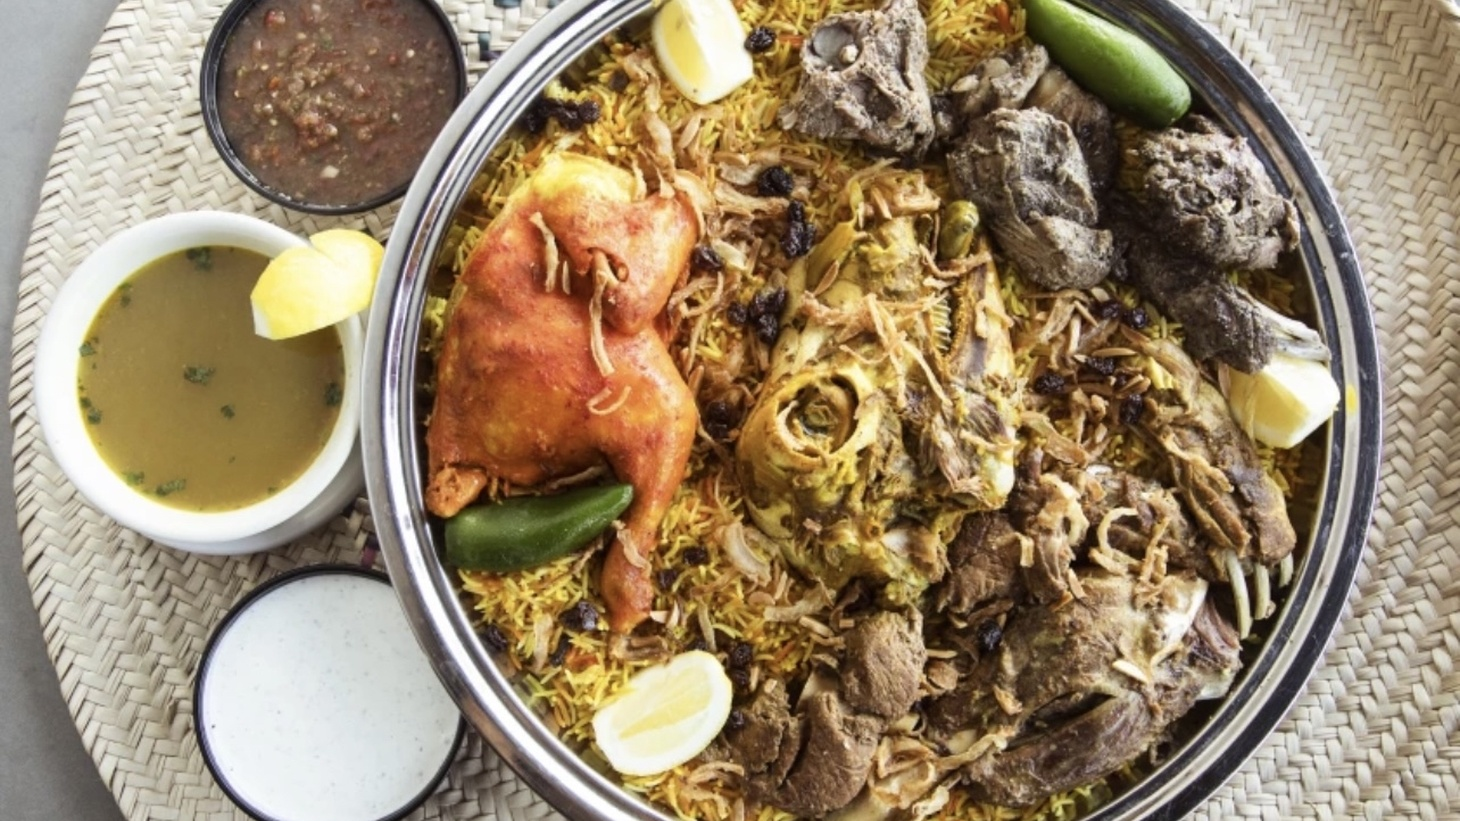 Traditionally prepared in an earthen pit, mandi is a technique used in Yemen that is typically prepared with chicken or lamb. Bill Addison recommends bringing friends and ordering a platter at the House of Mandi in Anaheim.